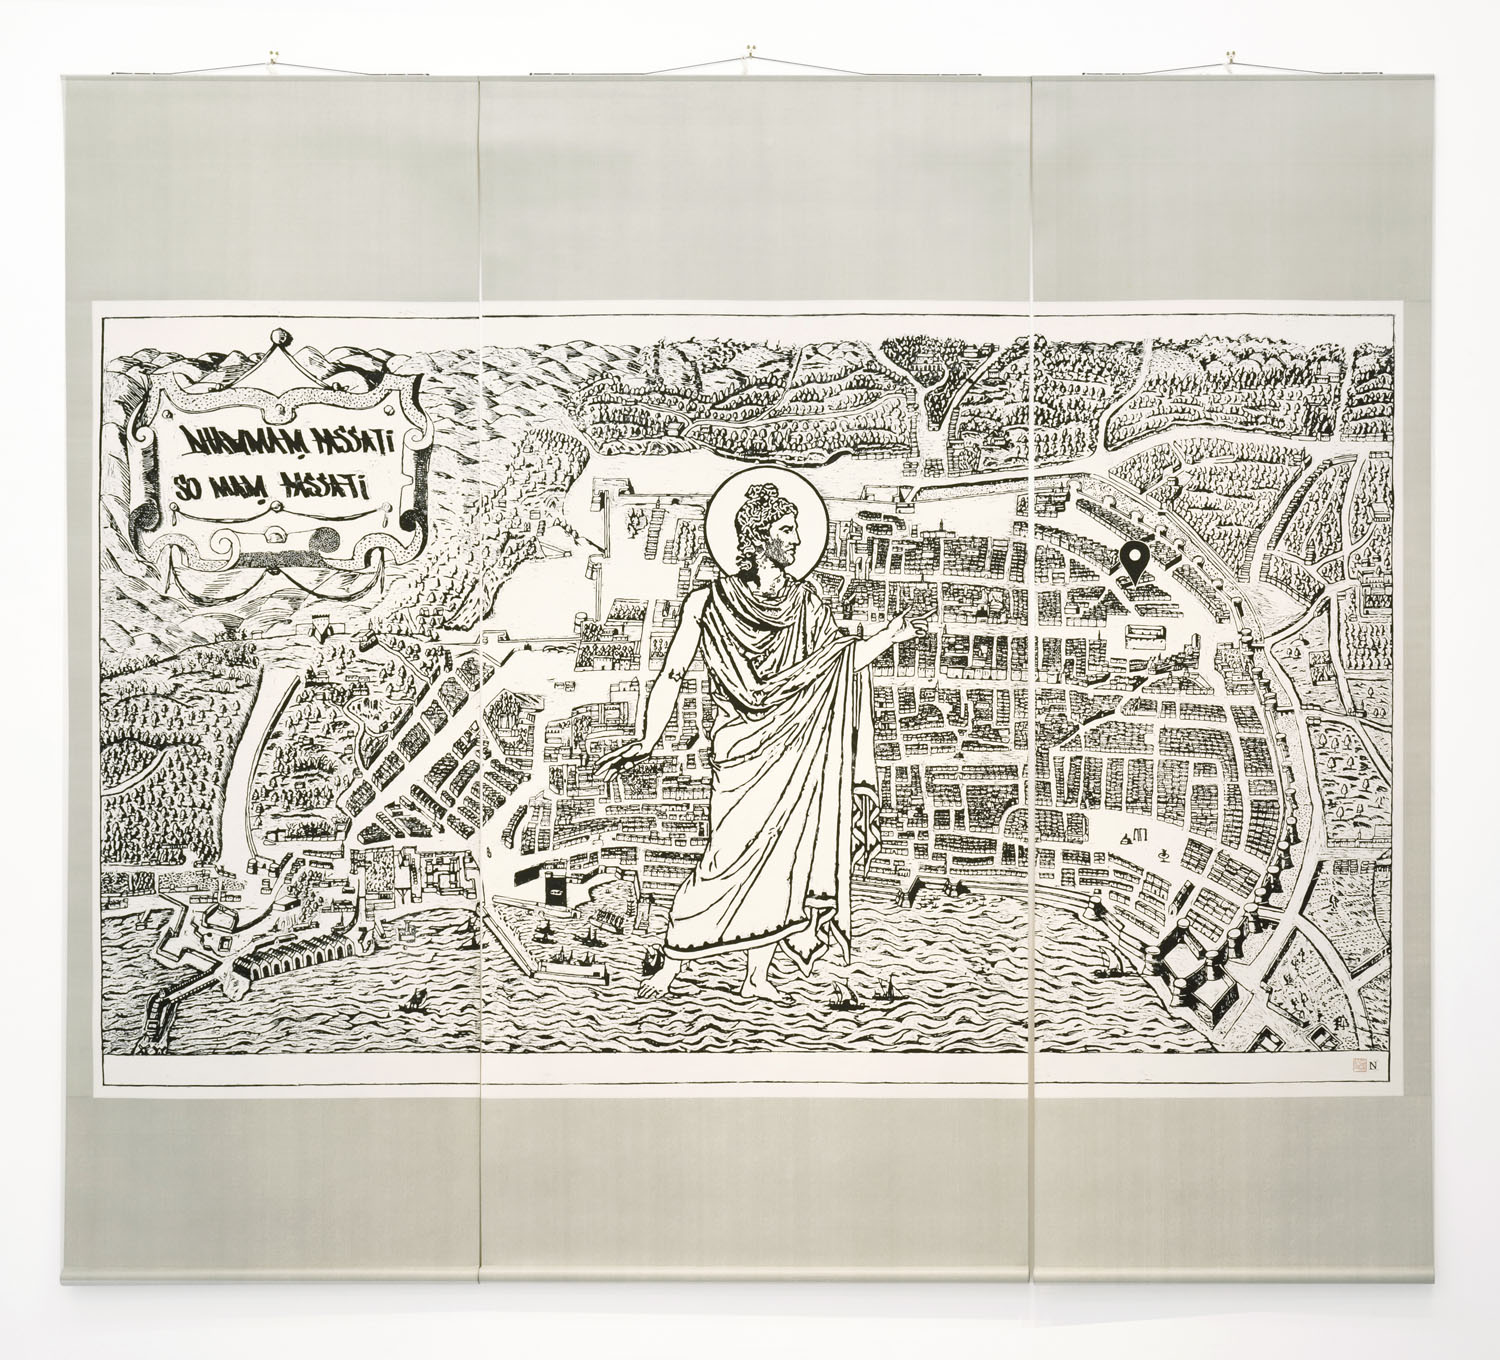 Natee Utarit2019Wood block print on rice paper mounted on scroll172.5 x 84 cm, 172.5 x 123 cm and 172.5 x 80 cm8 Edition, 3 AP and 1 Edition Cloister